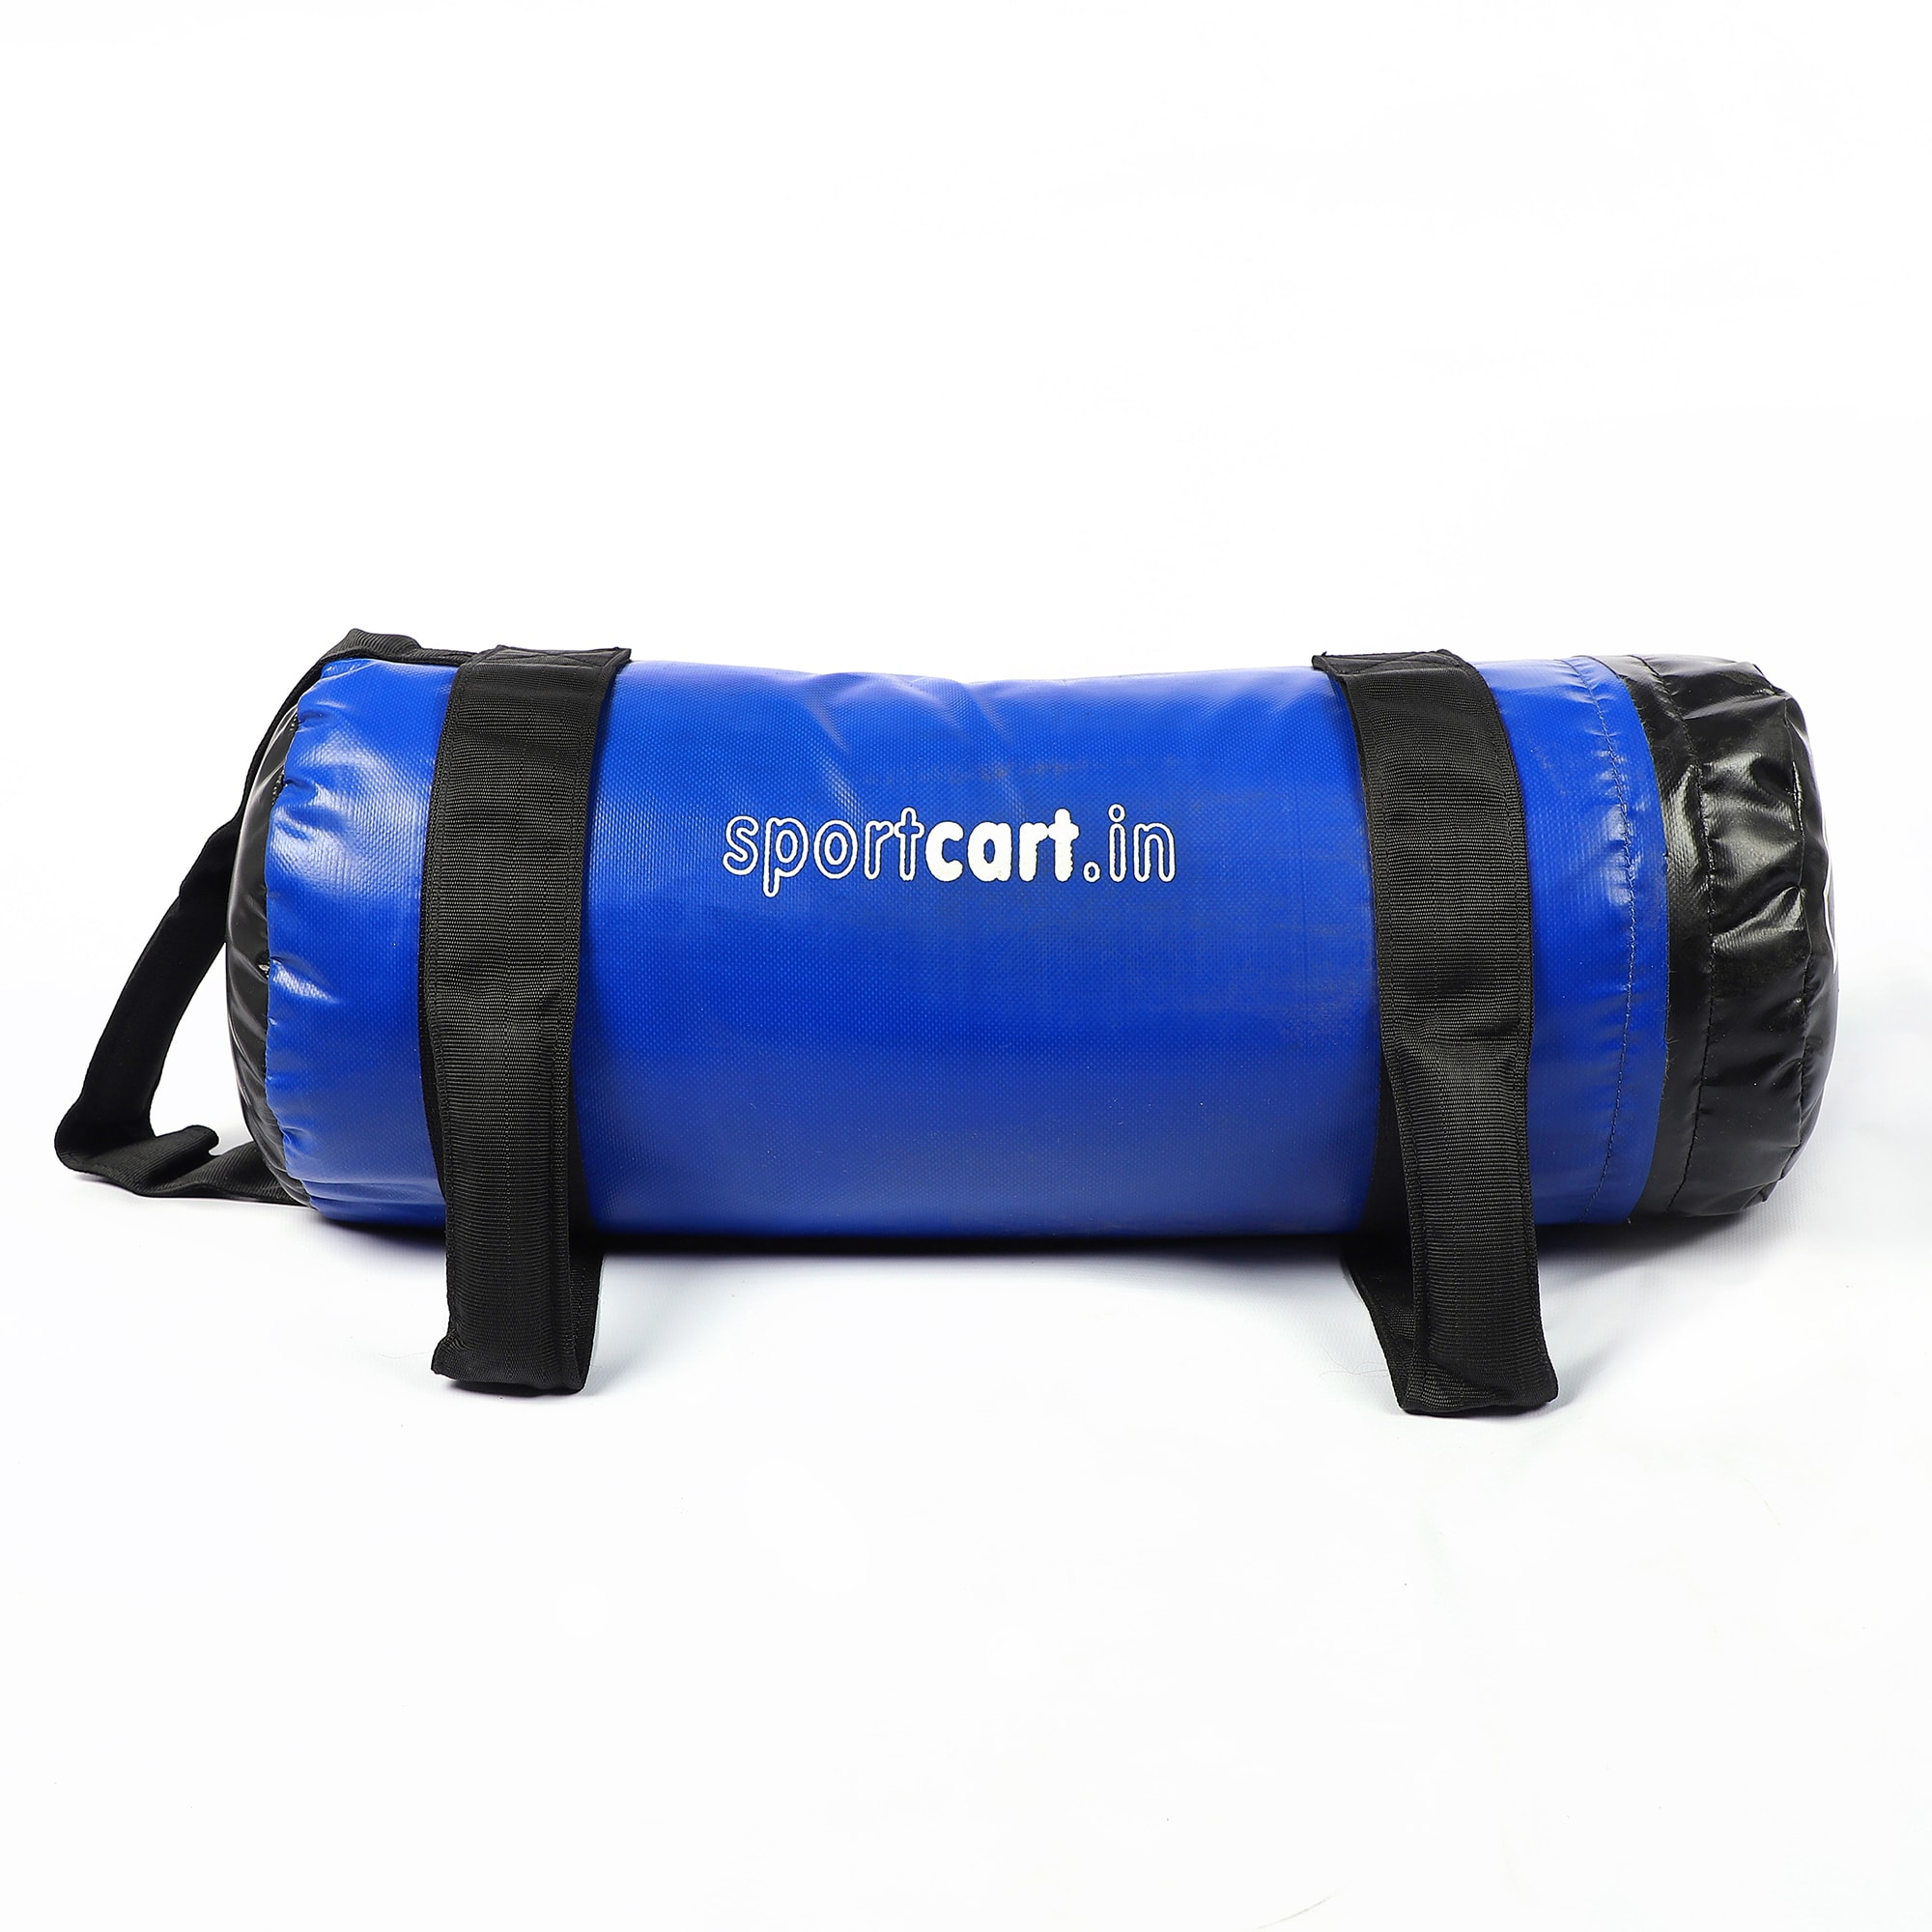 Sportcart.in Sand / Strength Bag